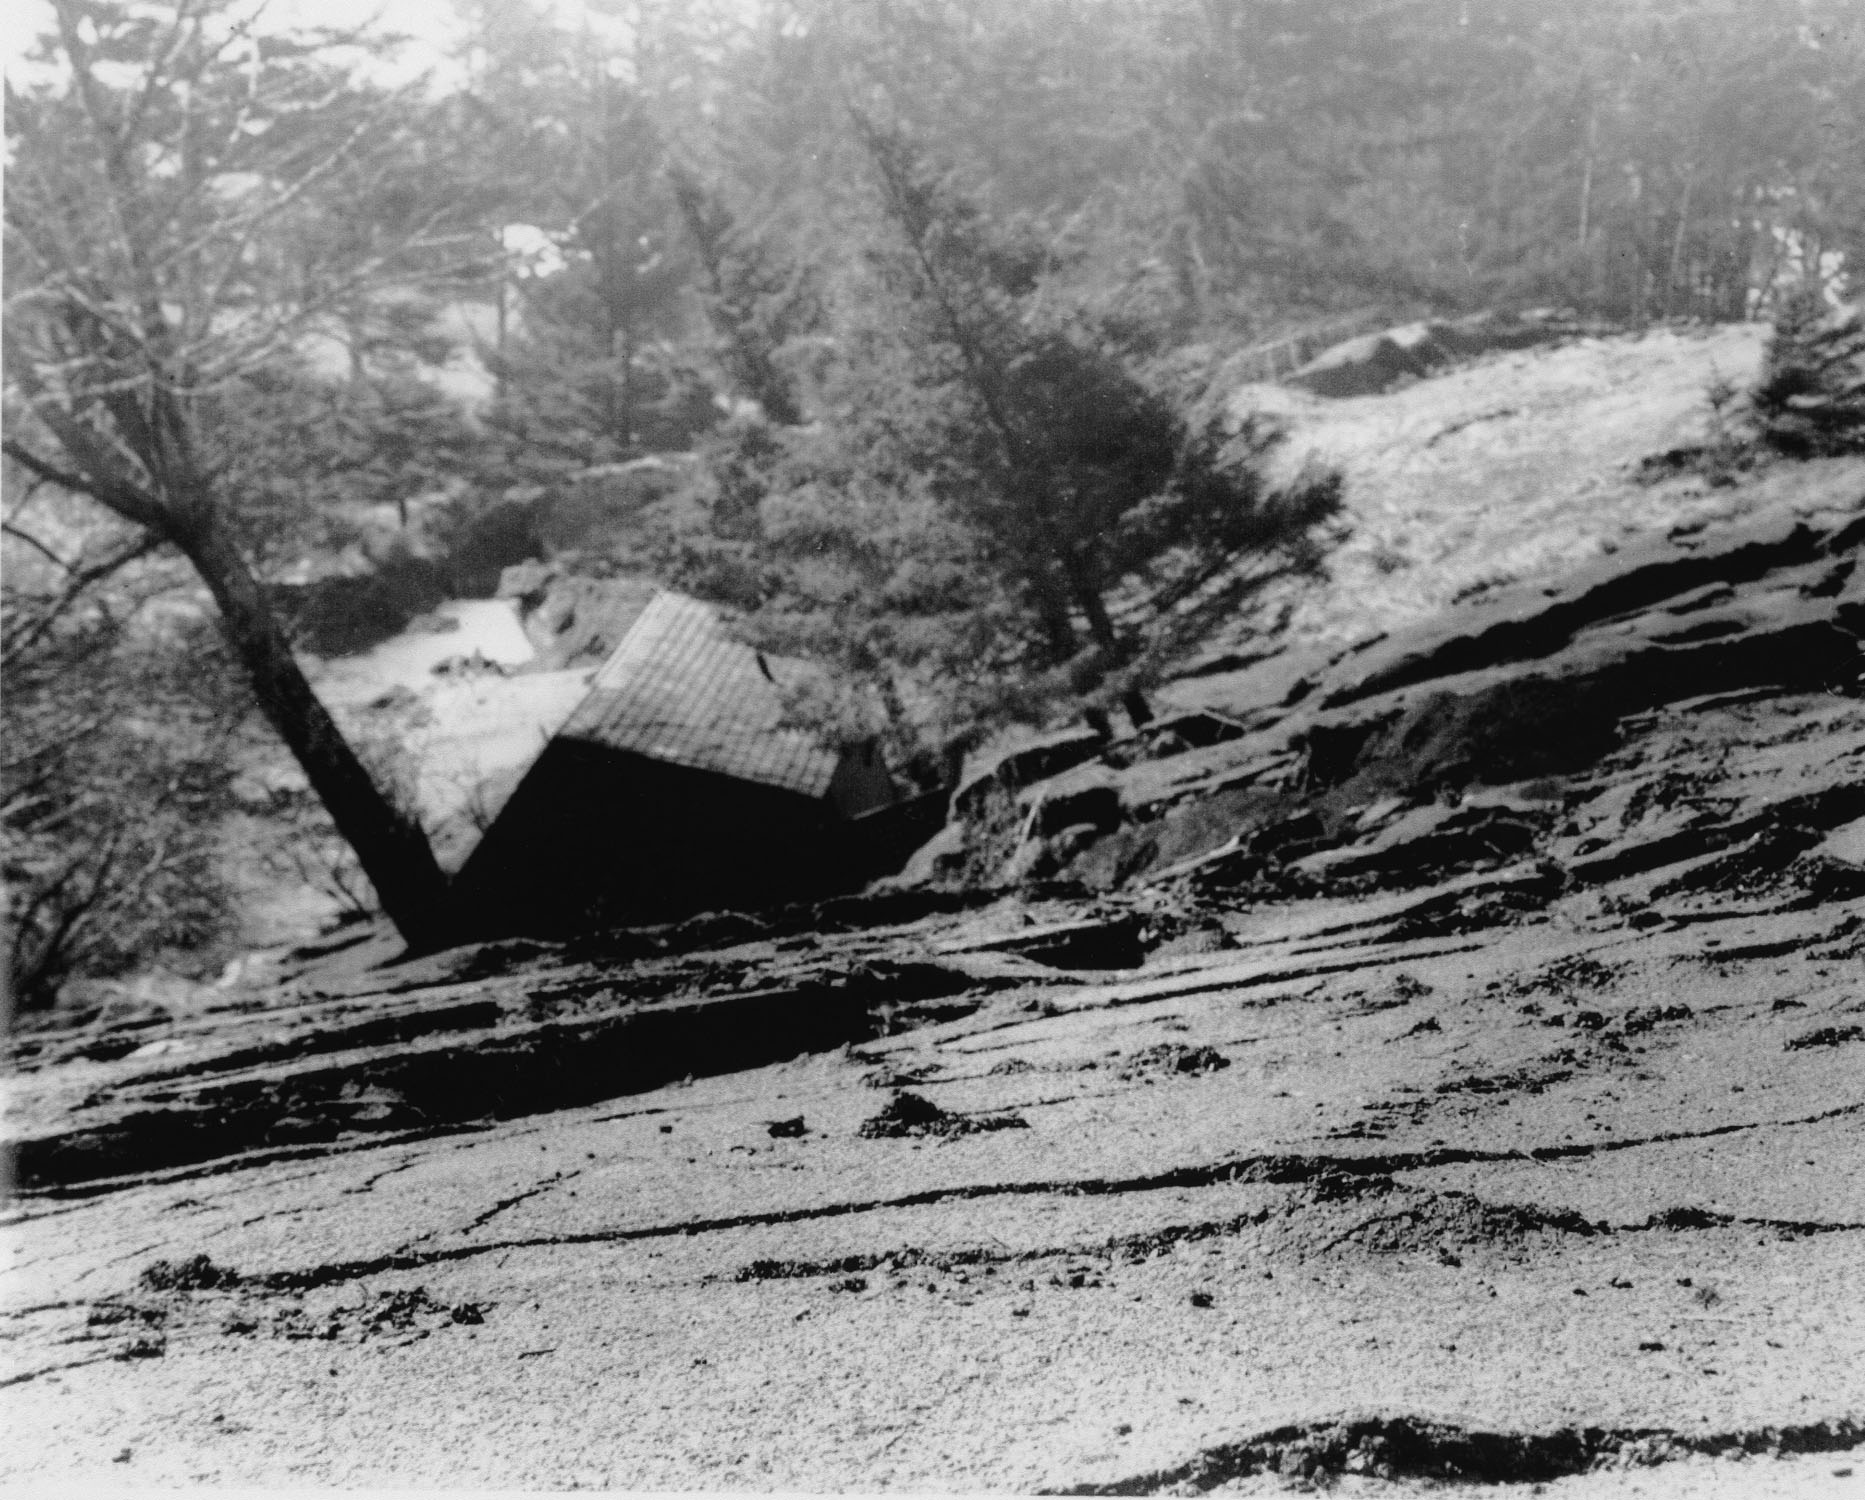 As you can see from the images, the damage at Ecola State Park was significant and is perhaps the reason that there are no longer buildings at the top of the park.